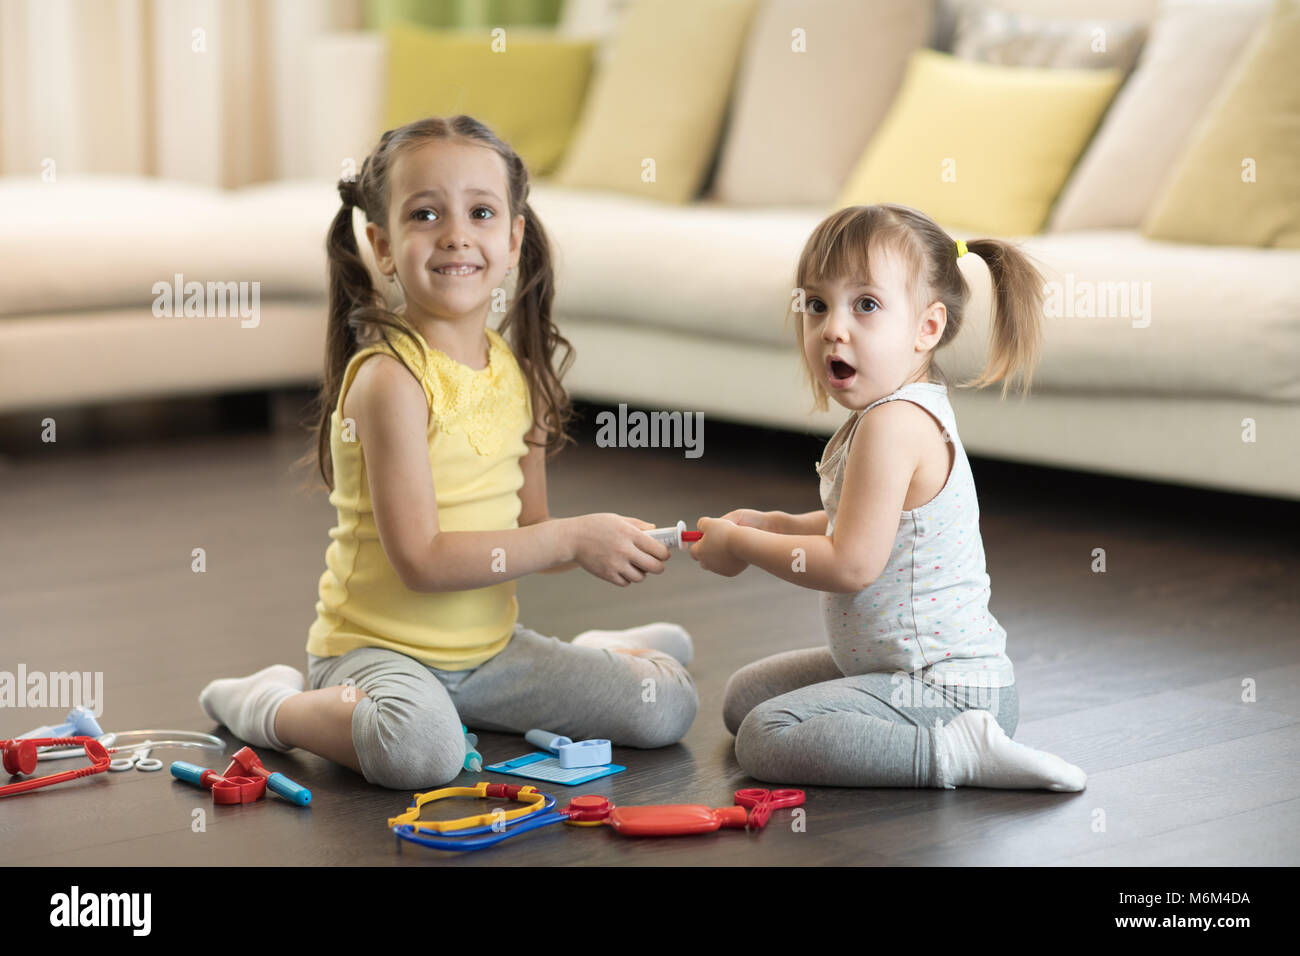 Conflict between little sisters playing at home. Kids are fighting, toddler girl takes toy, sibling relationships - Stock Image